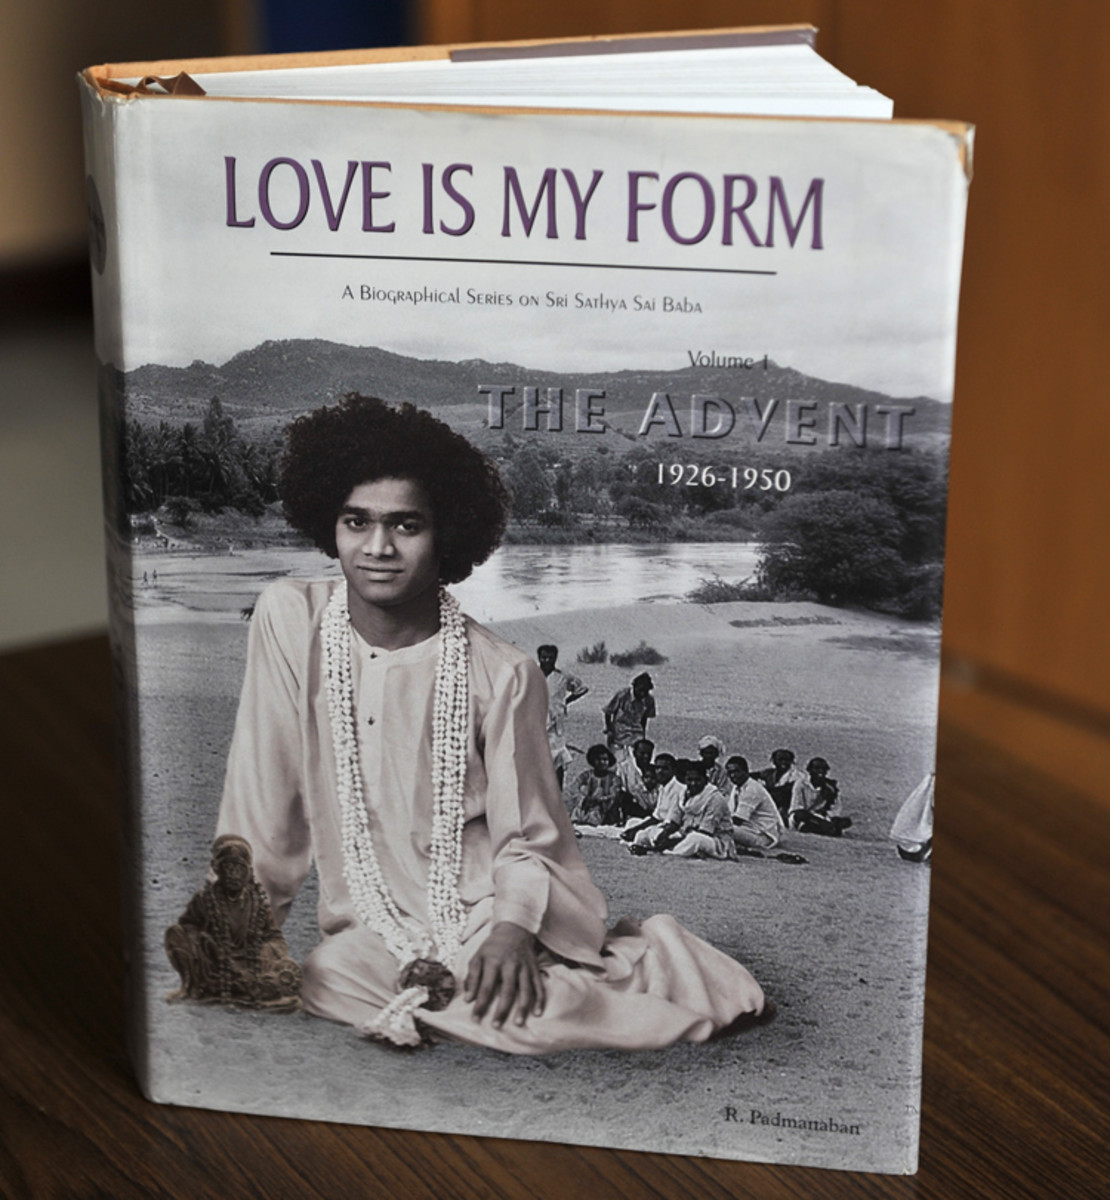 The Book - LOVE IS MY FORM